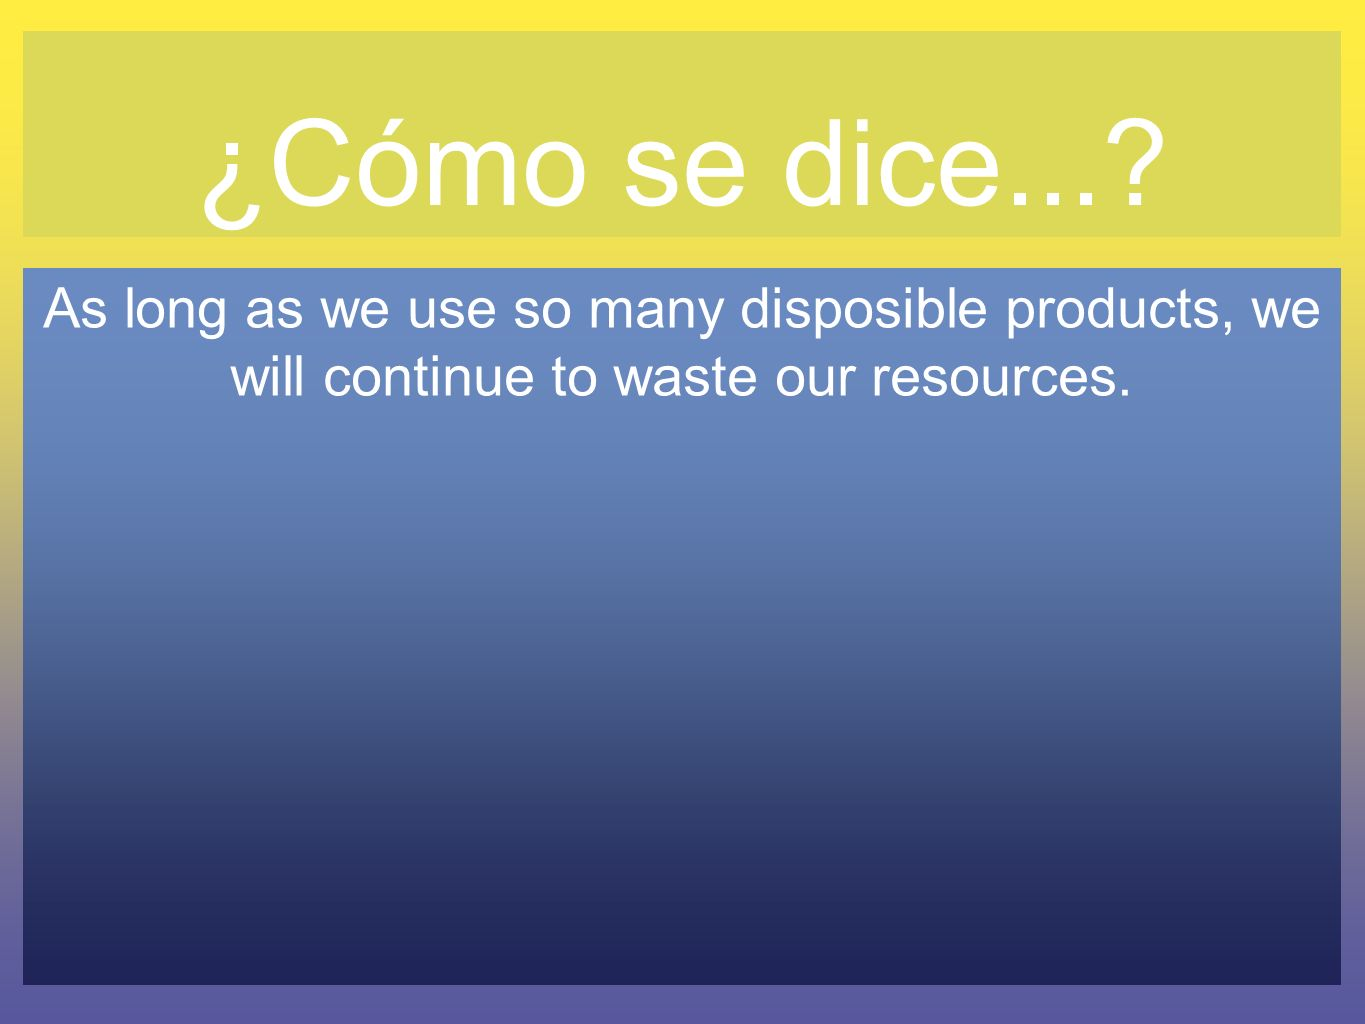 ¿Cómo se dice...? As long as we use so many disposible products, we will continue to waste our resources.